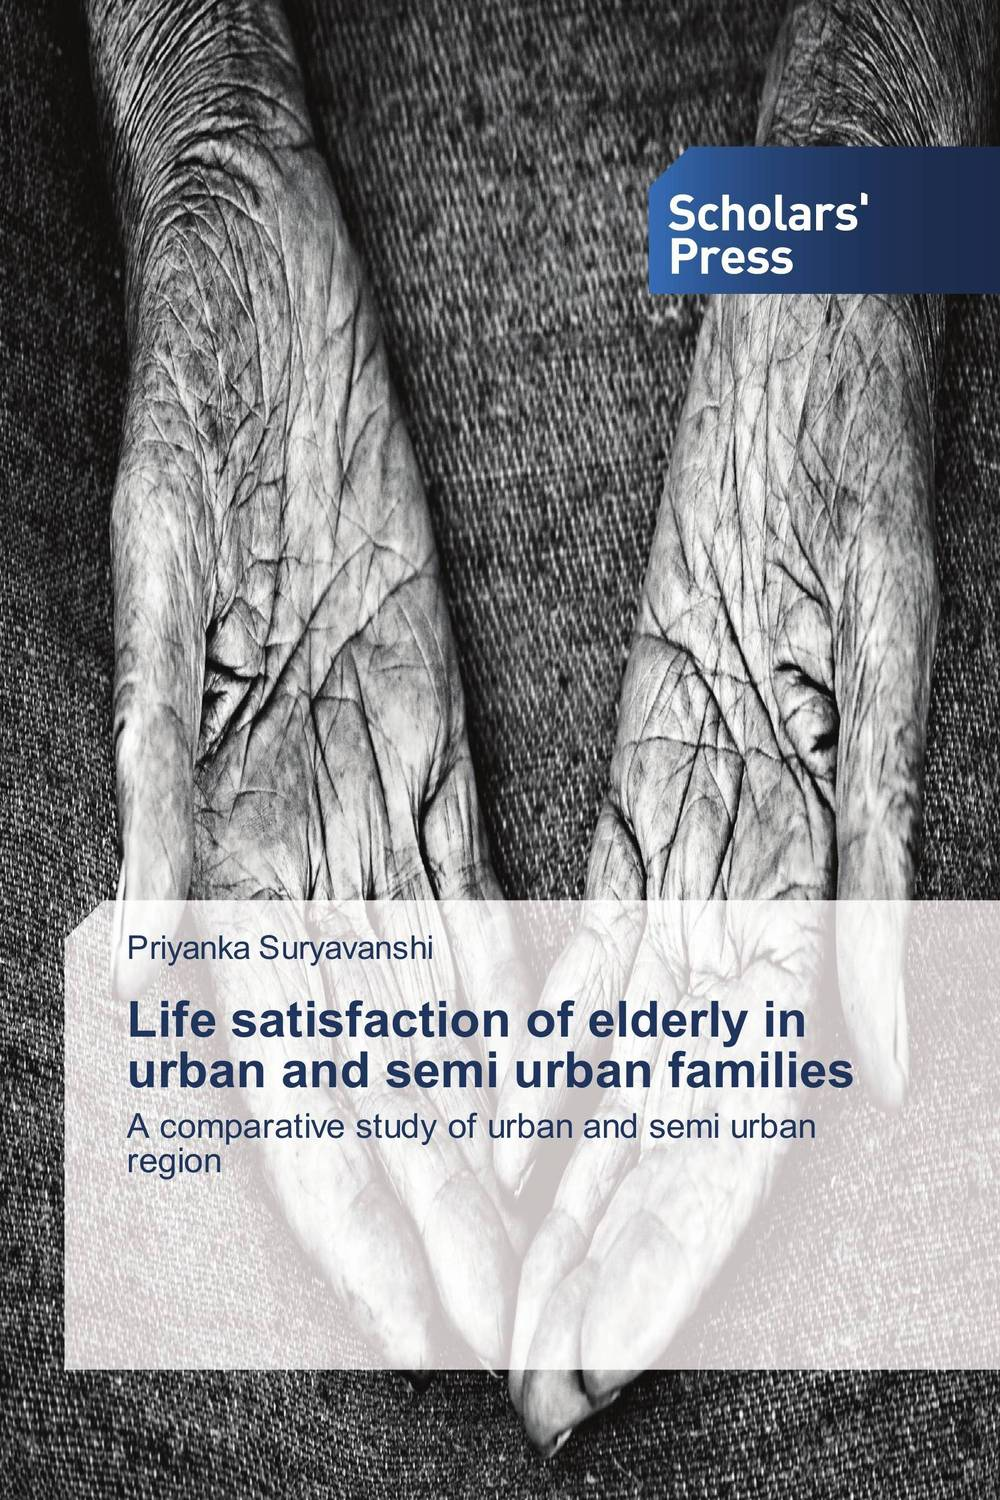 Life satisfaction of elderly in urban and semi urban families in search of satisfaction